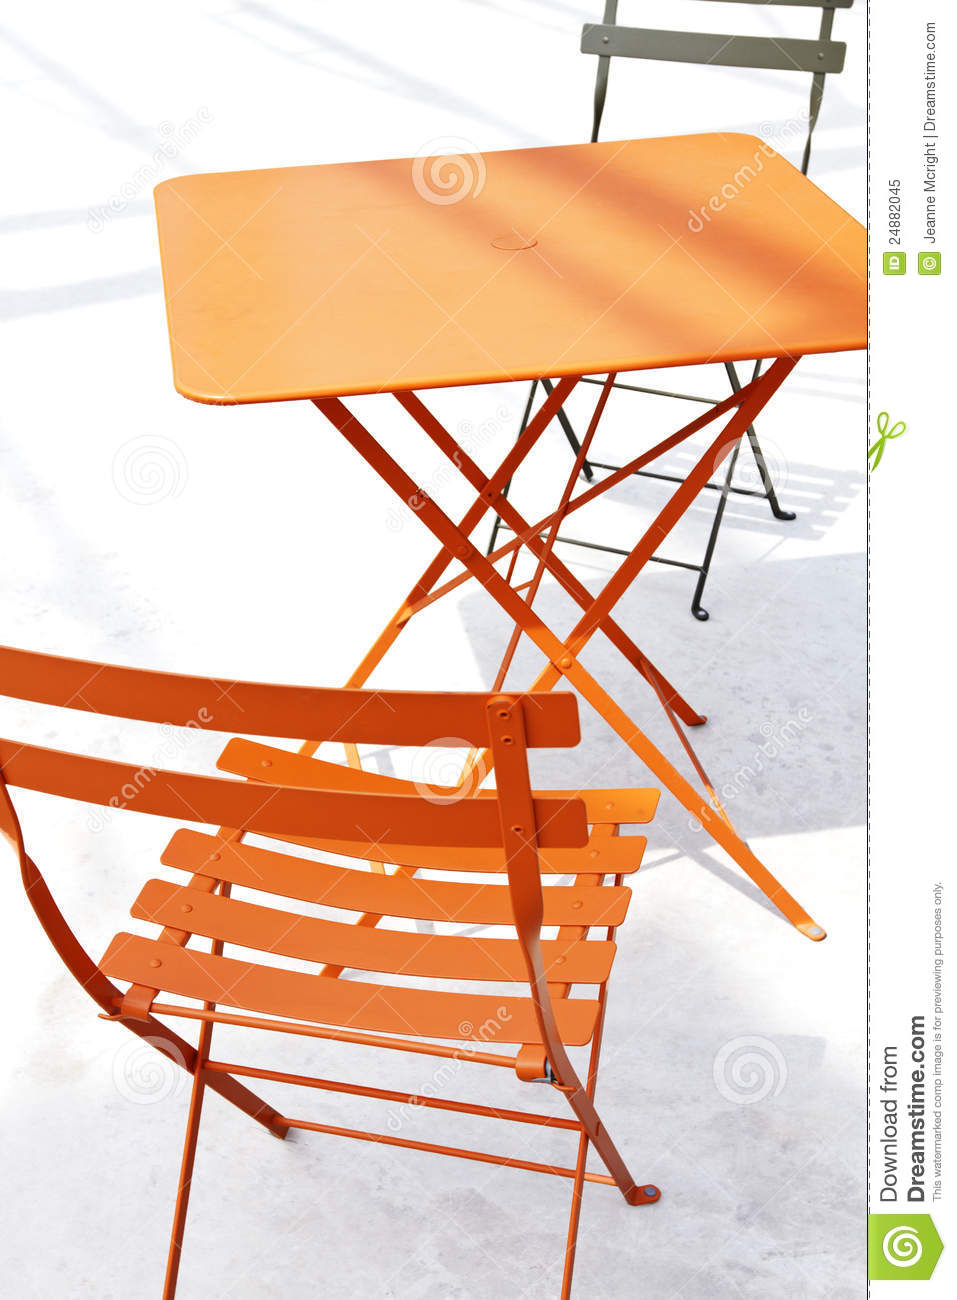 Orange Patio Chairs orange patio chair and table with shadow royalty free stock photo